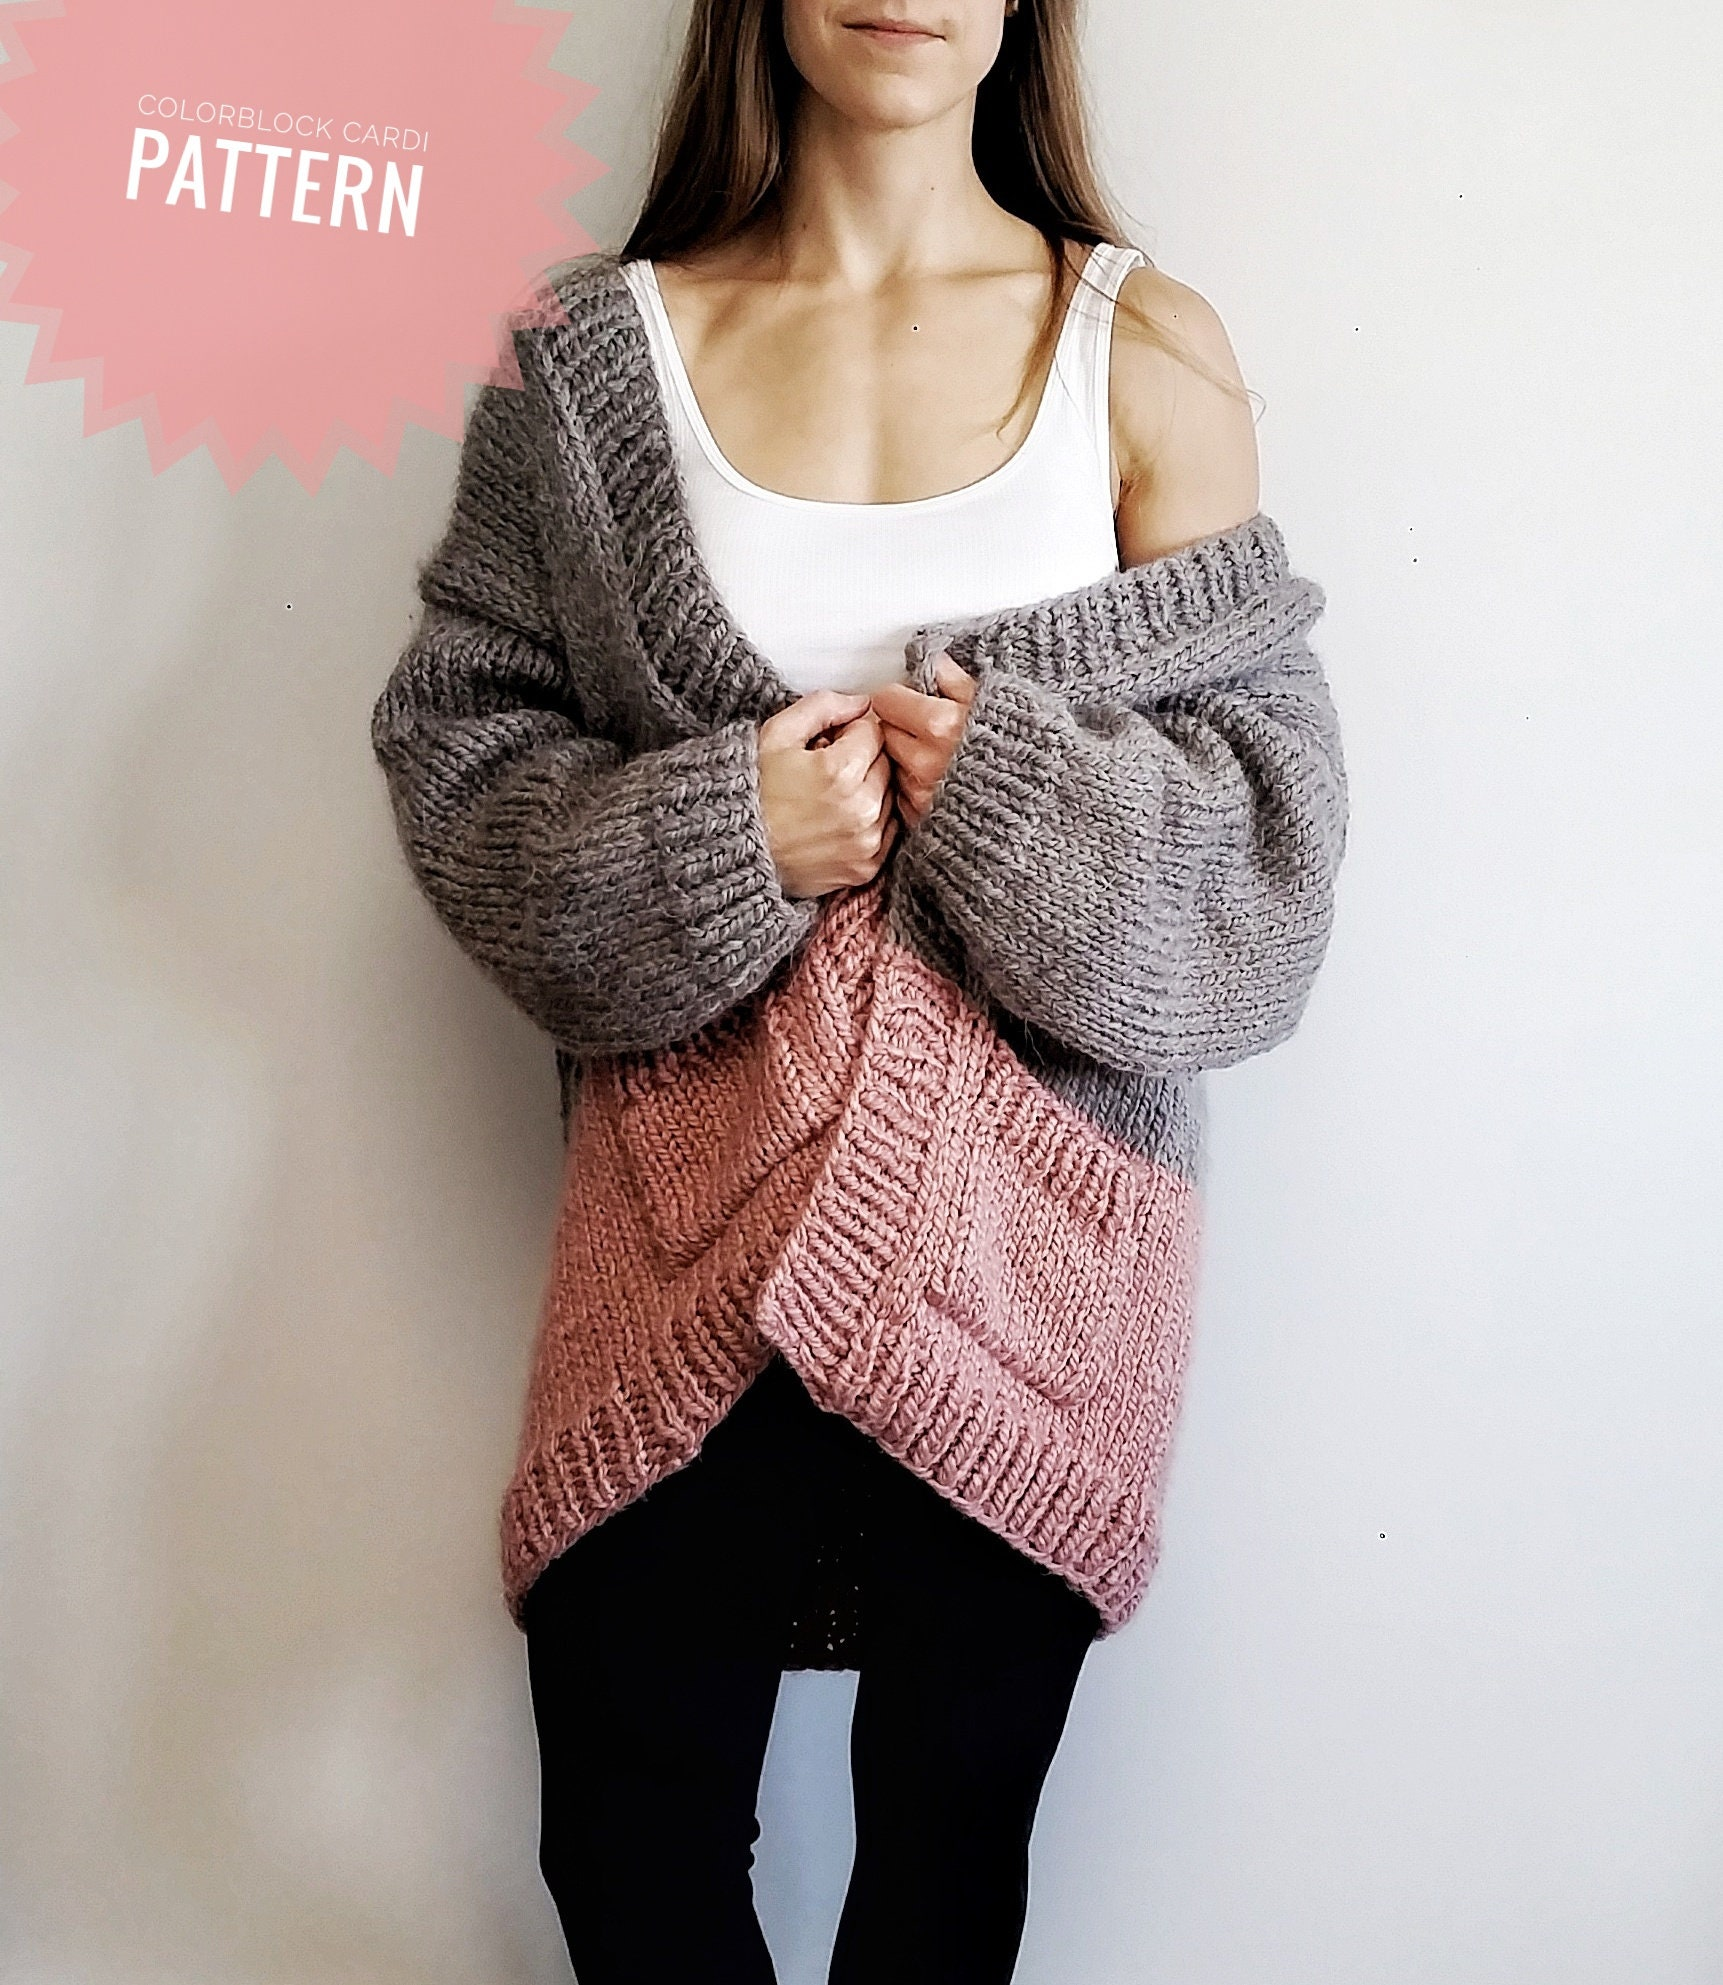 32f120e46b74 Colorblock Cardi    Chunky Knit Cardigan    Easy Knitting